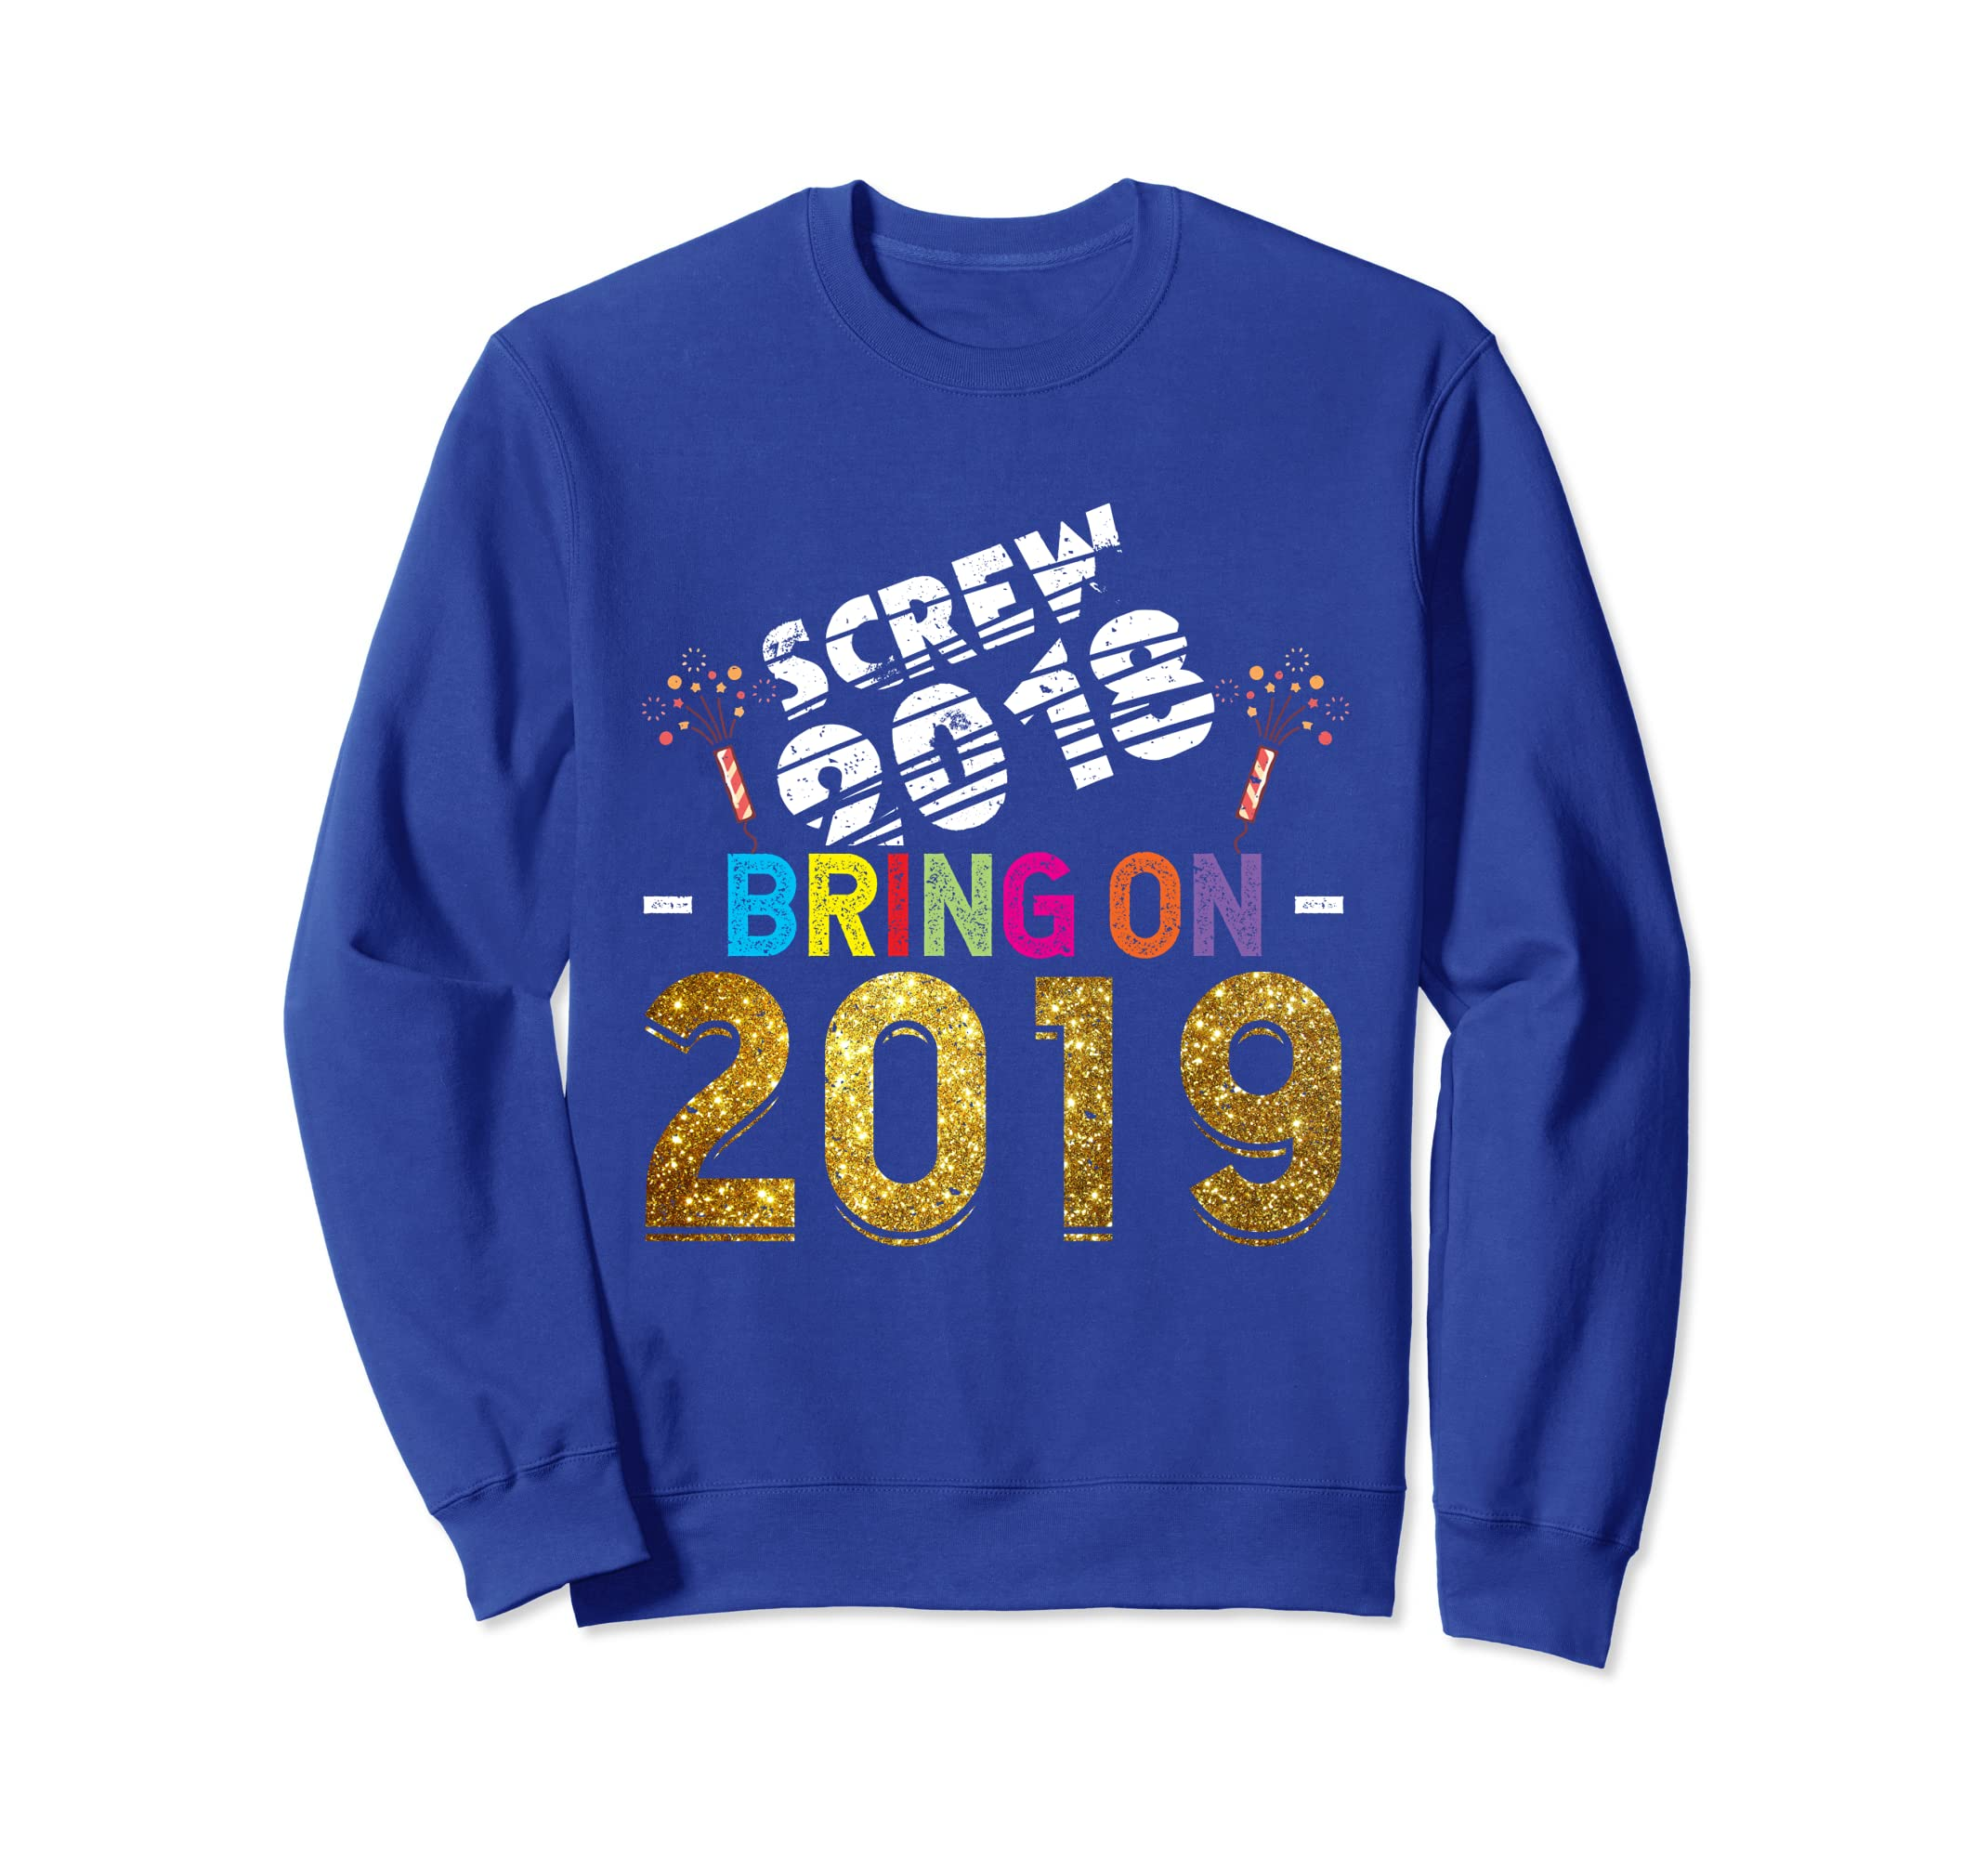 d8c04f14352c60 Amazon.com: Screw 2018 Bring On 2019 Happy New Year 2019 Gift Shirt:  Clothing